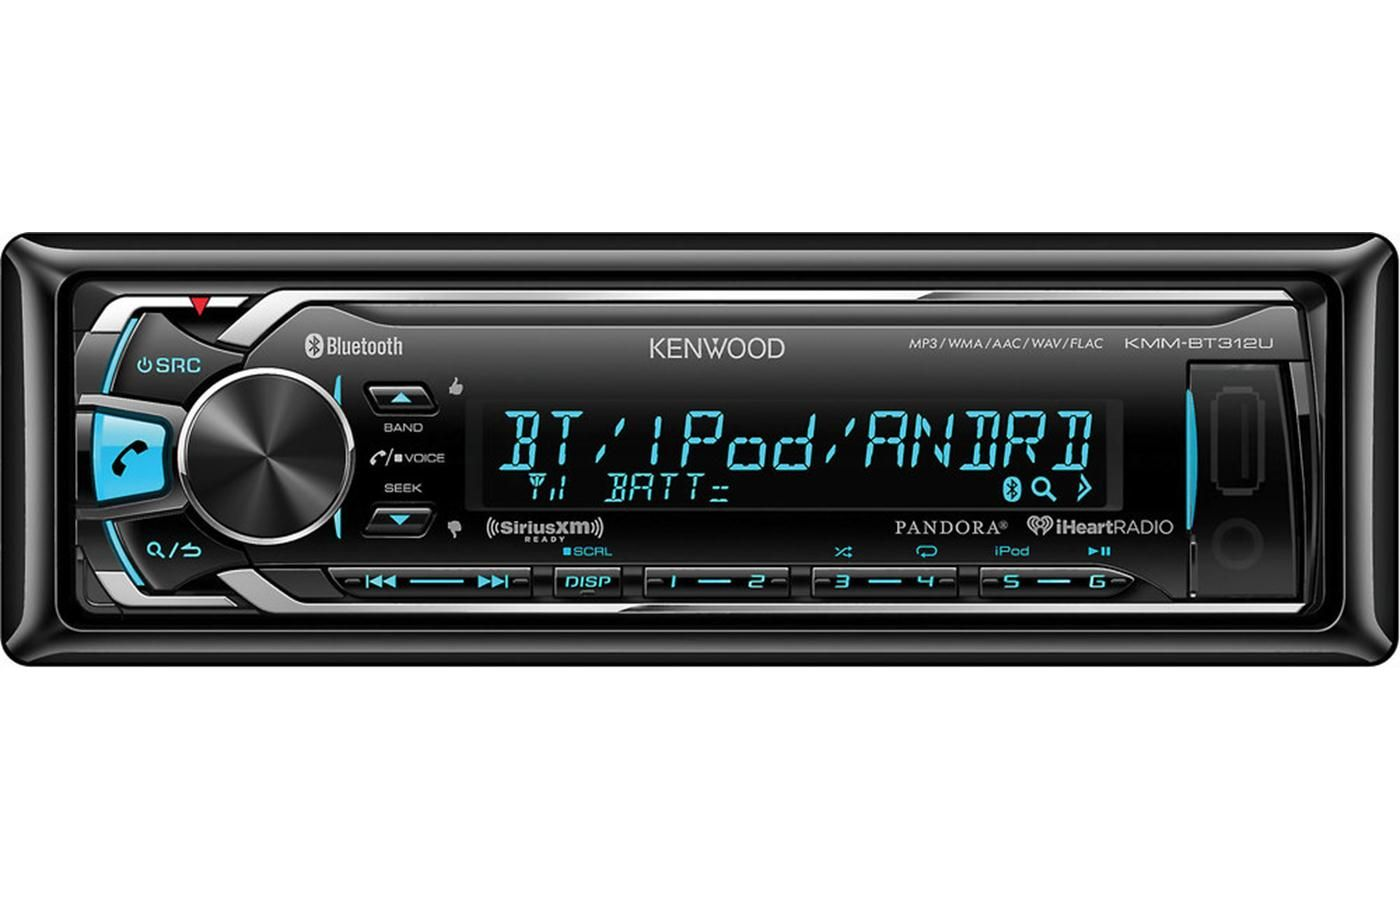 Kenwood Kmm Bt312u Digital Media Receiver Does Not Play Cds At Crutchfield Bluetooth Car Stereo Kenwood Car Stereo